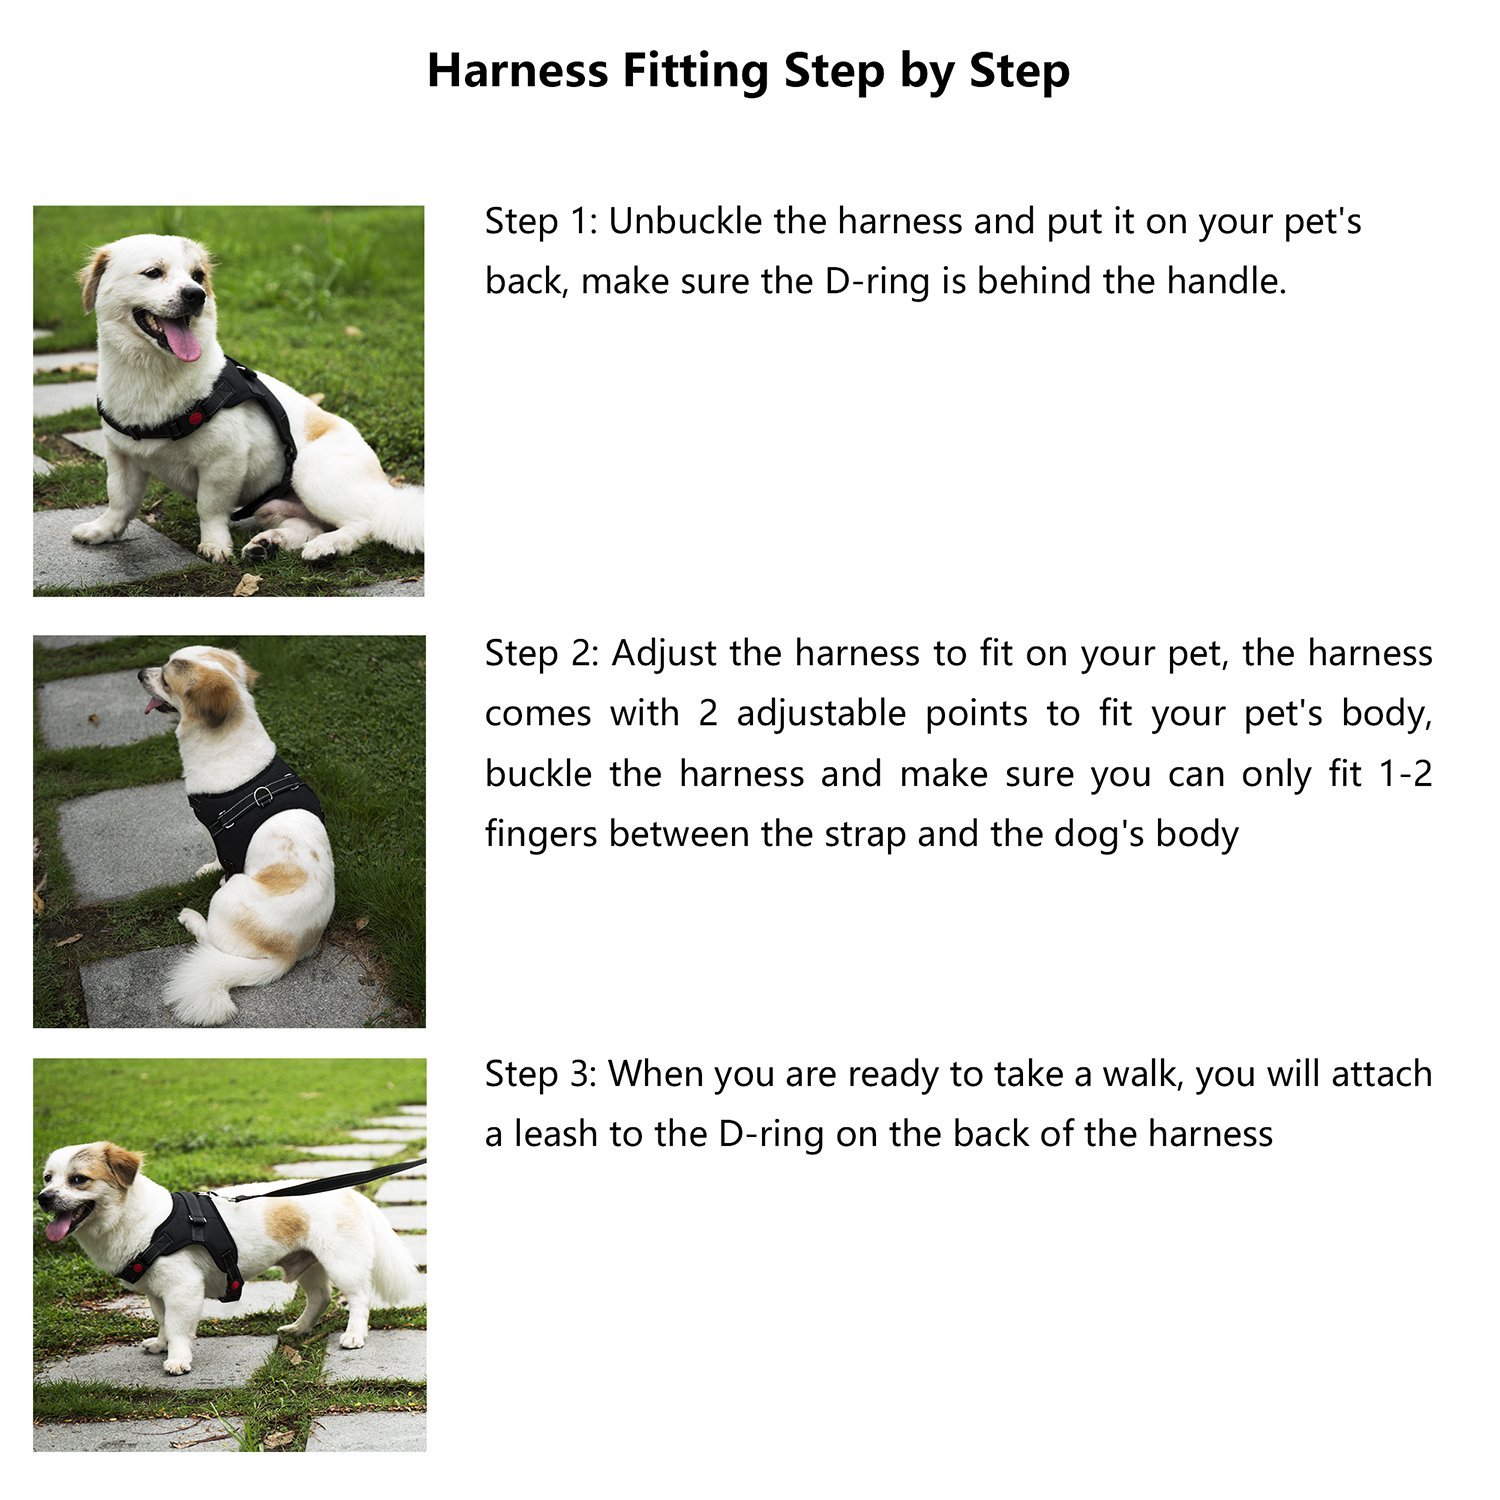 Dog Harness No-Pull Pet Harness - Adjustable Padded Reflective Pet Vest with Handle & Dog Leash Set - Easy Control for Small Medium Large Dogs - Perfect for Daily Training Walking Running (Medium) by THE ONE (Image #4)